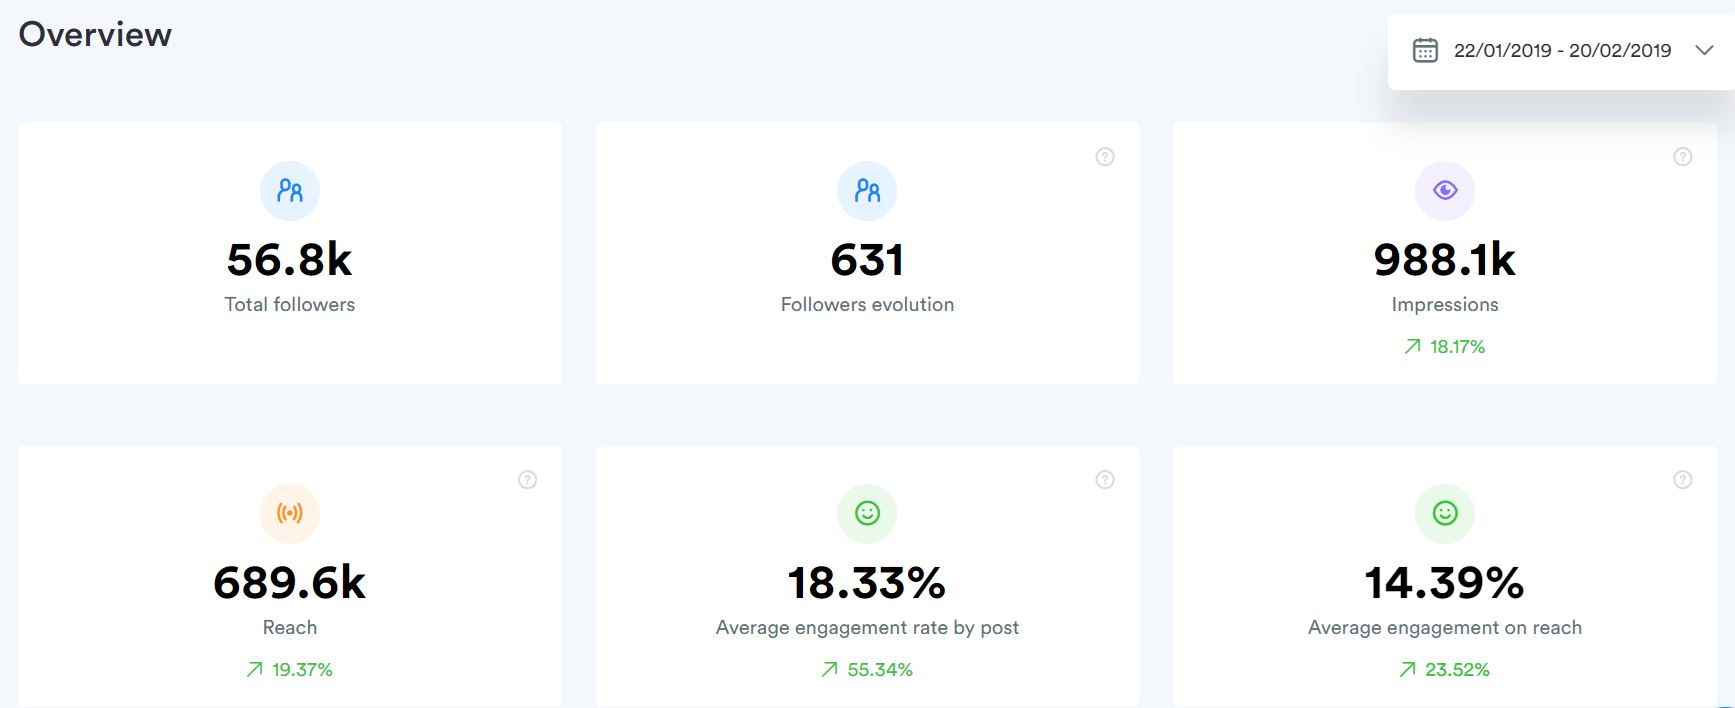 Iconosquare tools to grow Instagram followers 2019.JPG